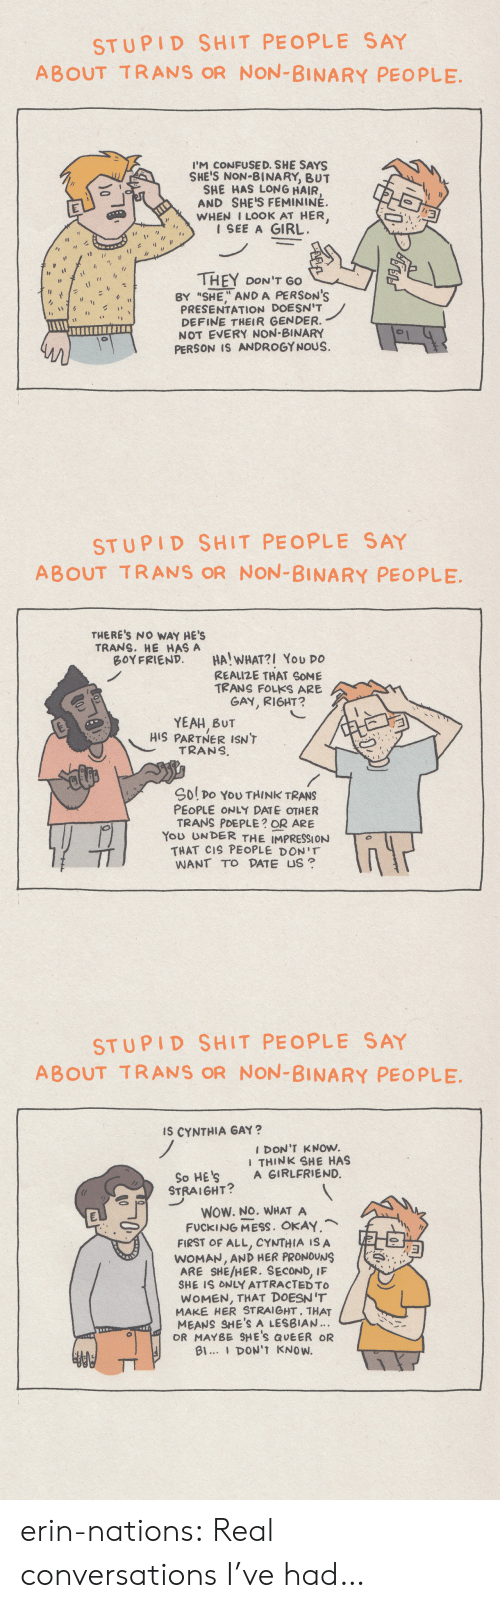 "Impression: STUPID SHIT PEOPLE SAY  ABOUT TRANS OR NON-BINARY PEOPLE  I'M CONFUSE D. SHE SAYS  SHE'S NON-BINARY, BUT  SHE HAS LONG HAIR  AND SHE'S FEMININÉ.  WHEN I LOOK AT HER,  1 SEE A GIRL  THEY DON'T GO  BY ""SHE"" AND A PERSON'S  PRESENTATION DOESN'T  DEFINE THEIR GENDER.  NOT EVERY NON-BINARY  PERSON IS ANDROGYNOUS.  1  0   STUPID SHIT PEOPLE SAY  ABOUT TRANS OR NON-BINARY PEOPLE  THERE'S NO WAY HE'S  TRANS. HE HAS A  BOYFRIEND  HA! WHAT?I You DO  REAIZE THAT SOME  TRANS FOLKS ARE  GAY, RIGHT?  YEAH BUT  HIS PARTNER ISN'T  TRANS  Sol po YoU THINK TRANS  PEOPLE ONLY DATE OTHER  TRANS PDEPLE? OR ARE  You UNDER THE IMPRESSION  THAT CIS PEOPLE DON'T  WANT TO DATE US   STUPID SHIT PEOPLE SAY  ABOUT TRANS OR NON-BINARY PEOPLE  Is CYNTHIA GAY?  I DON'T KNOW.  I THINK SHE HAS  A GIRLFRIEND.  So HE'S  STRAIGHT?  WOW. NO. WHAT A  FUCKING MESS. OKAY,  FIRST OF ALL, CYNTHIA IS A  WOMAN, AND HER PRONOUNS  IF  ARE SHE/HER. SECOND,  SHE IS ONLY ATTRACTED TO  WOMEN, THAT DOESN'T  MAKE HER STRAIGHT, THAT  MEANS SHE'S A LESBIAN.  OR MAYBE SHE'S QUEER OR  Bl... DON'T KNOW. erin-nations:  Real conversations I've had…"